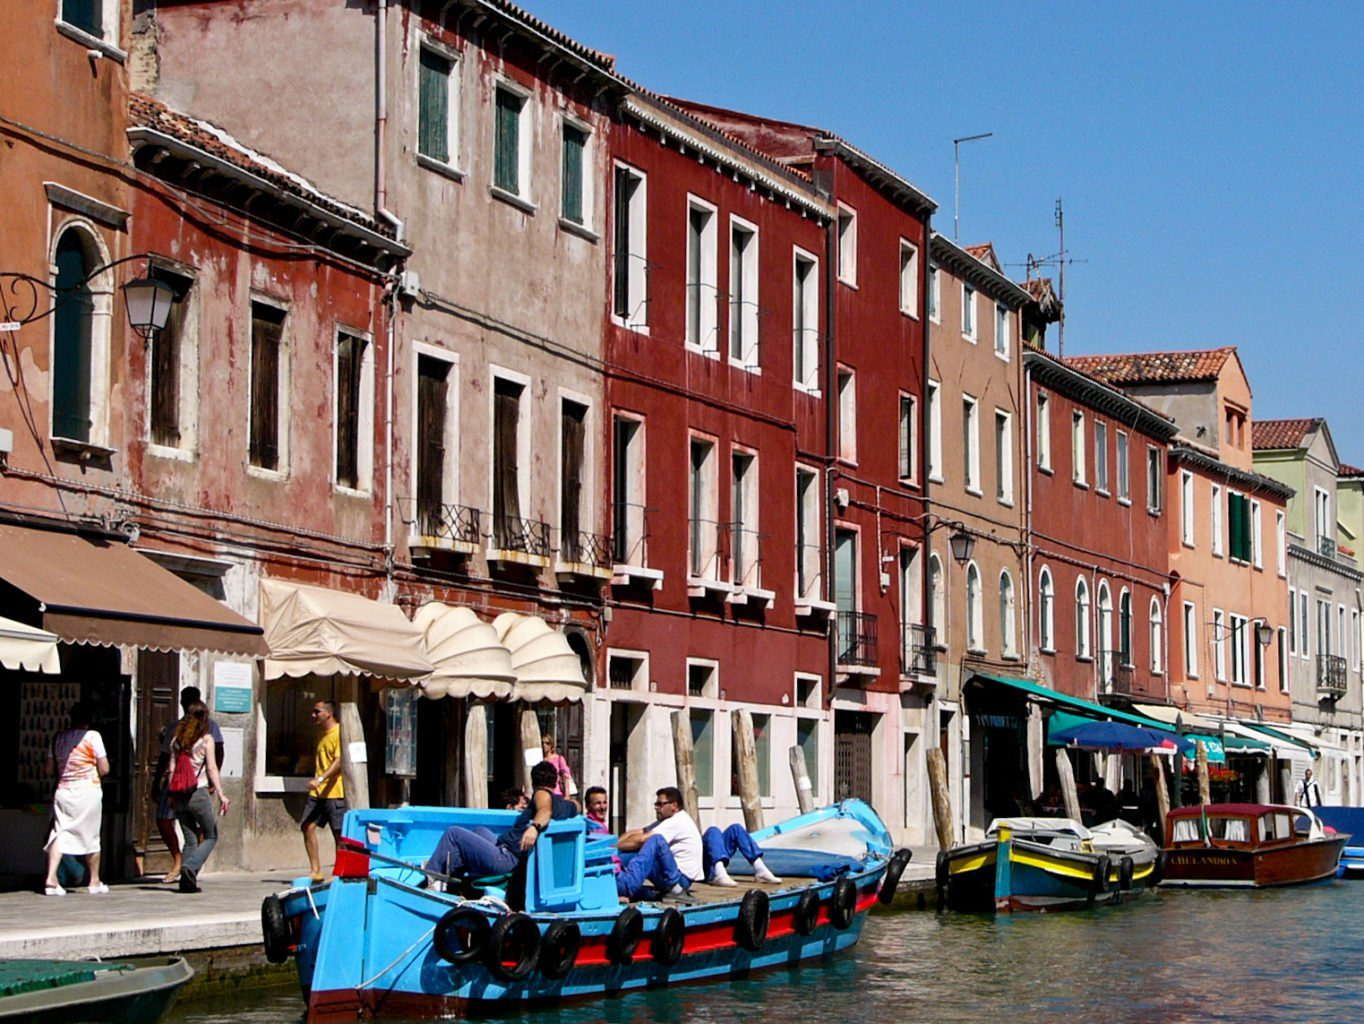 How to Get to Murano from Venice 0